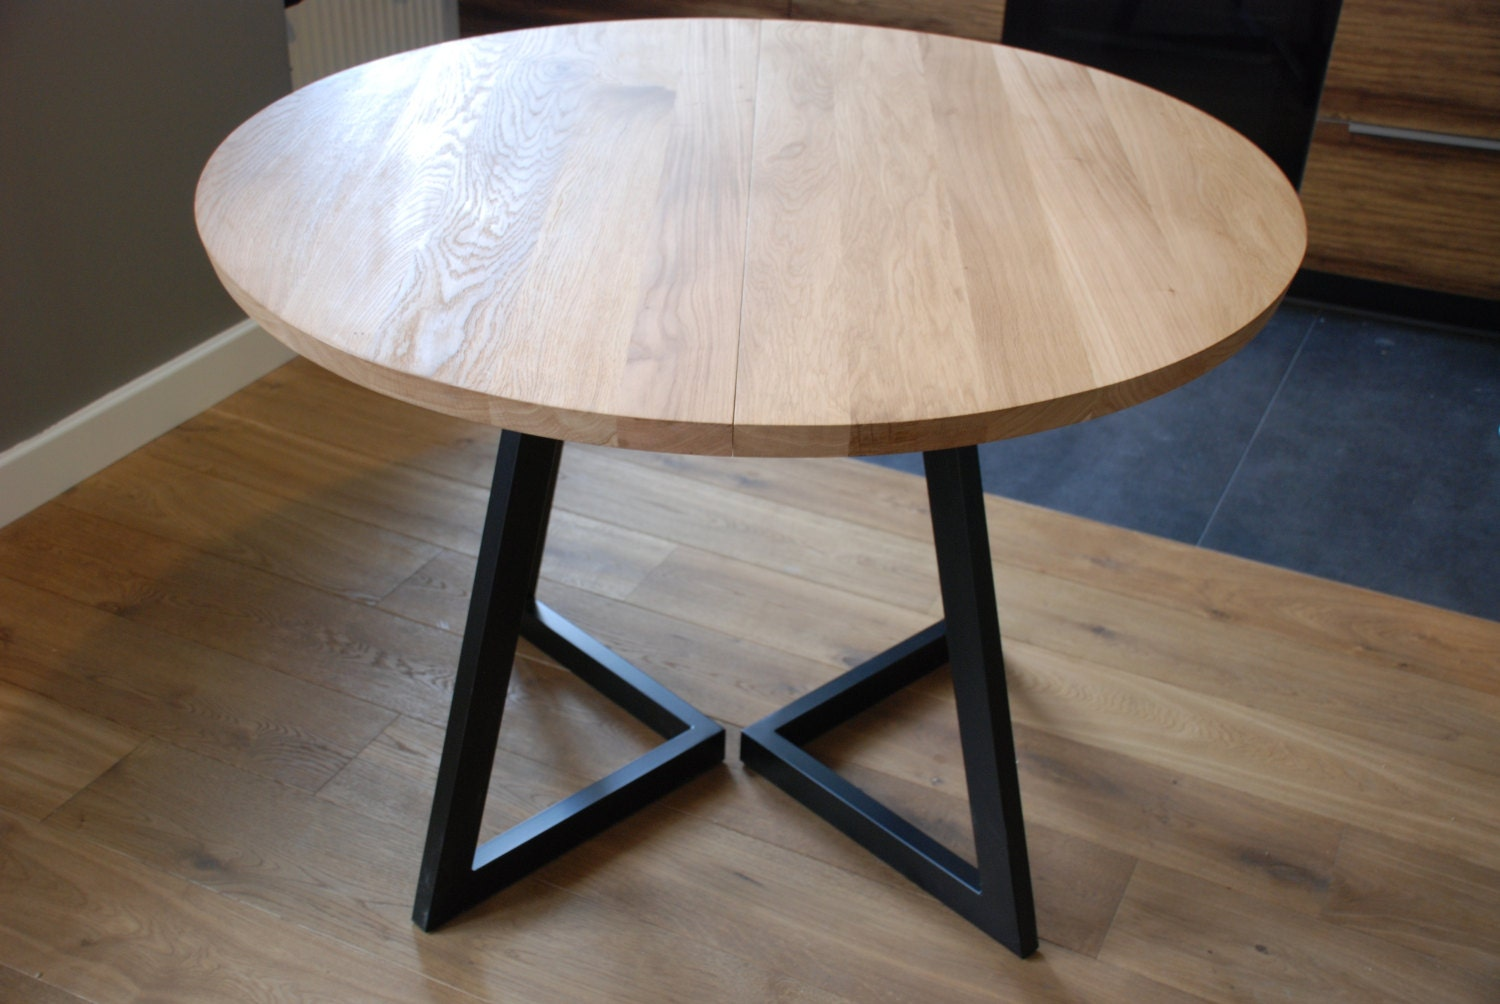 Extendable round table modern design steel and timber for Petite table extensible